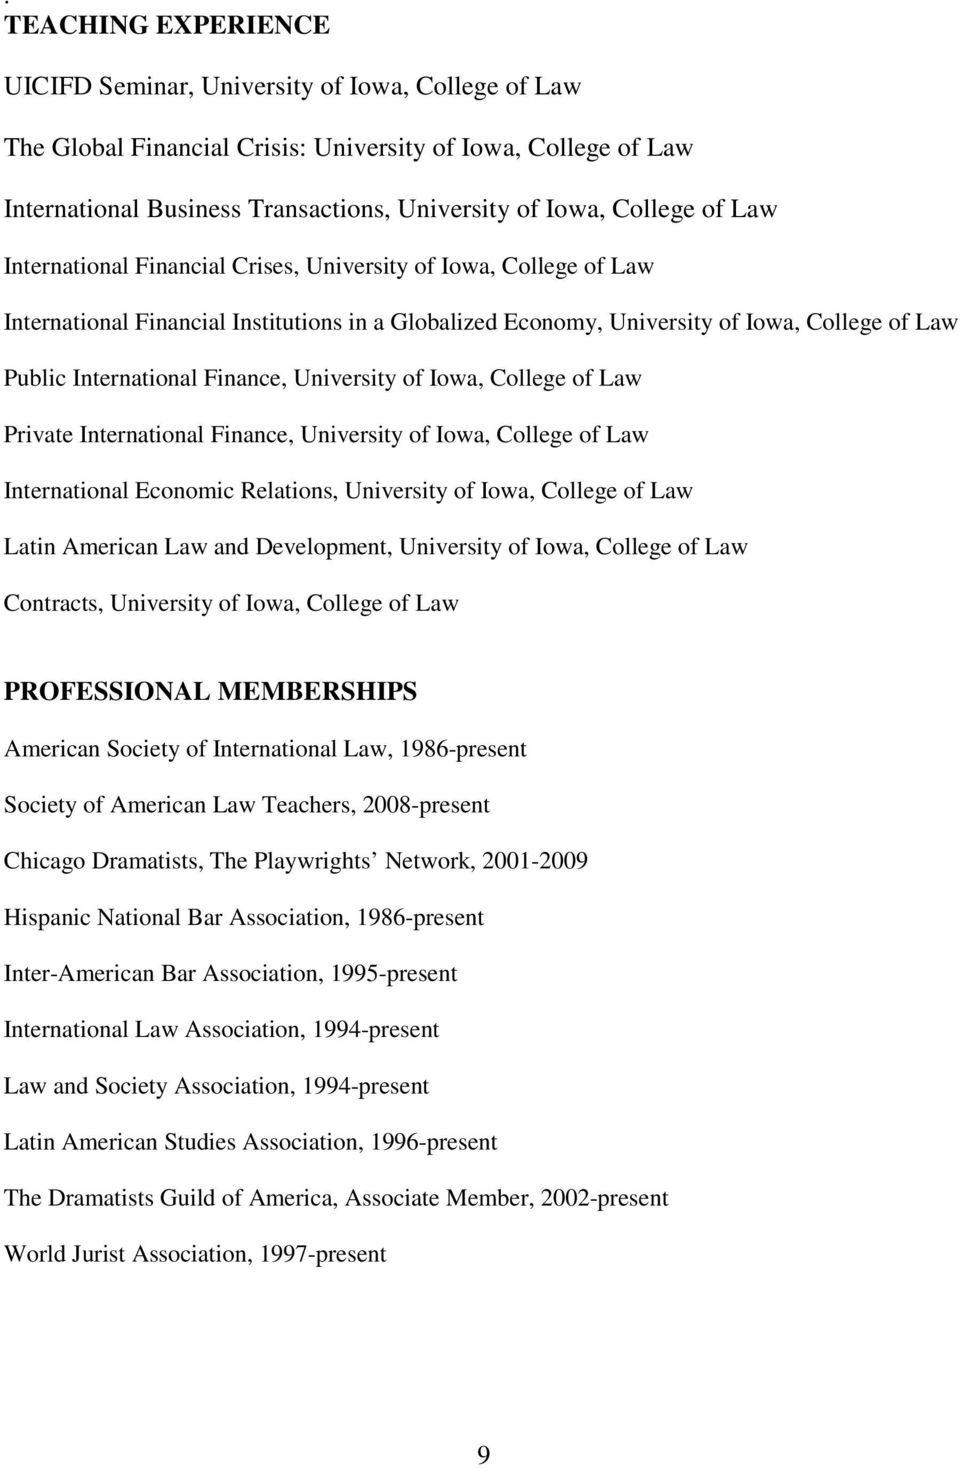 Finance, University of Iowa, College of Law Private International Finance, University of Iowa, College of Law International Economic Relations, University of Iowa, College of Law Latin American Law